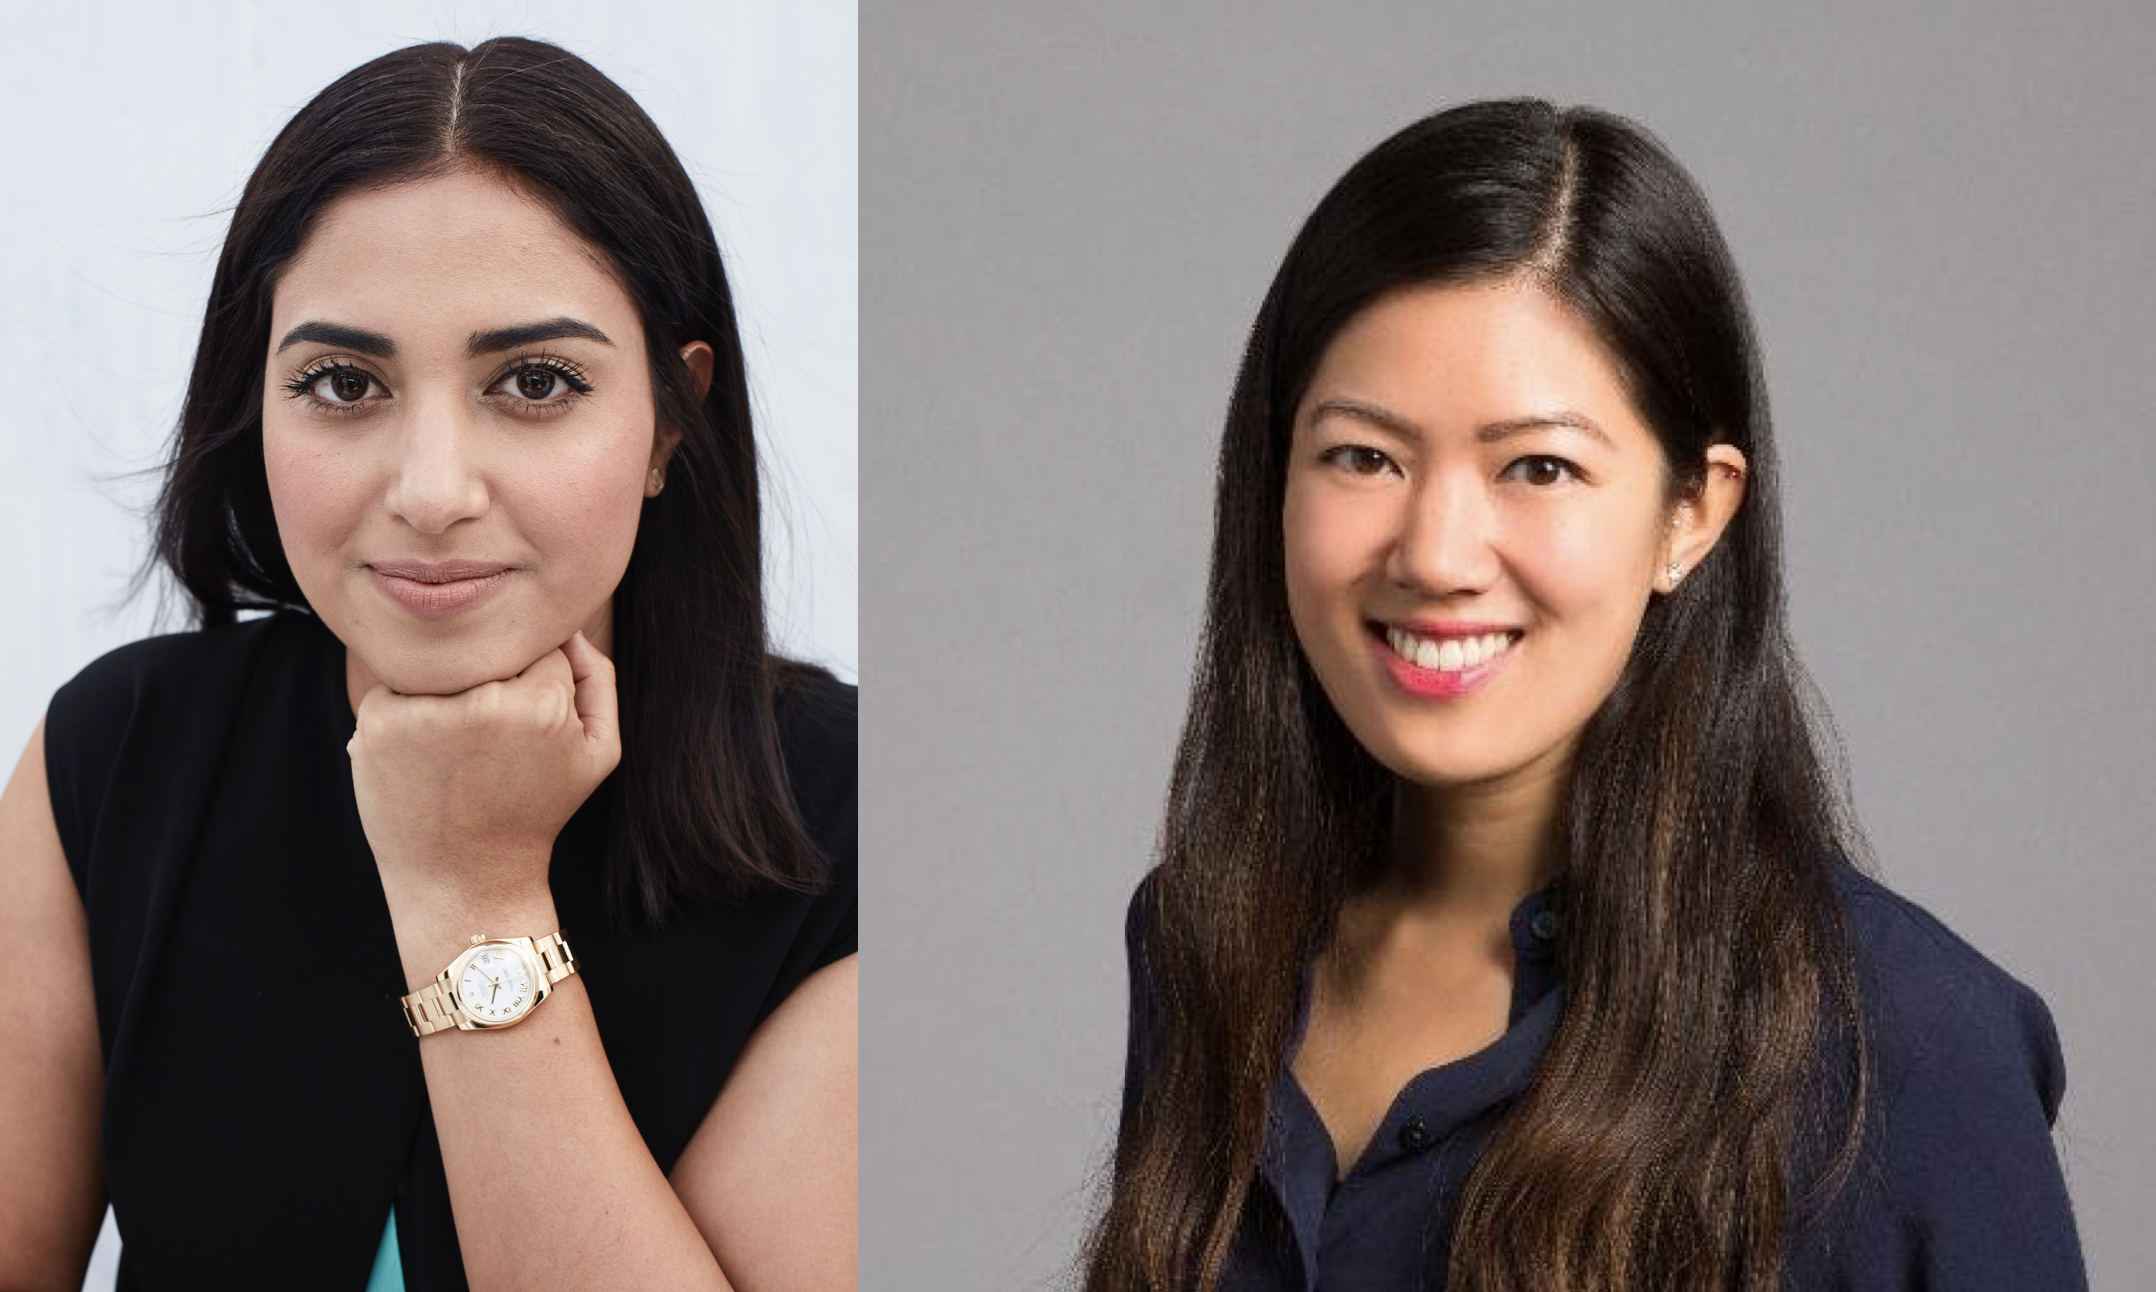 - Tanya Martinez & Pearl Chan, co-founders at Snowball Wealth